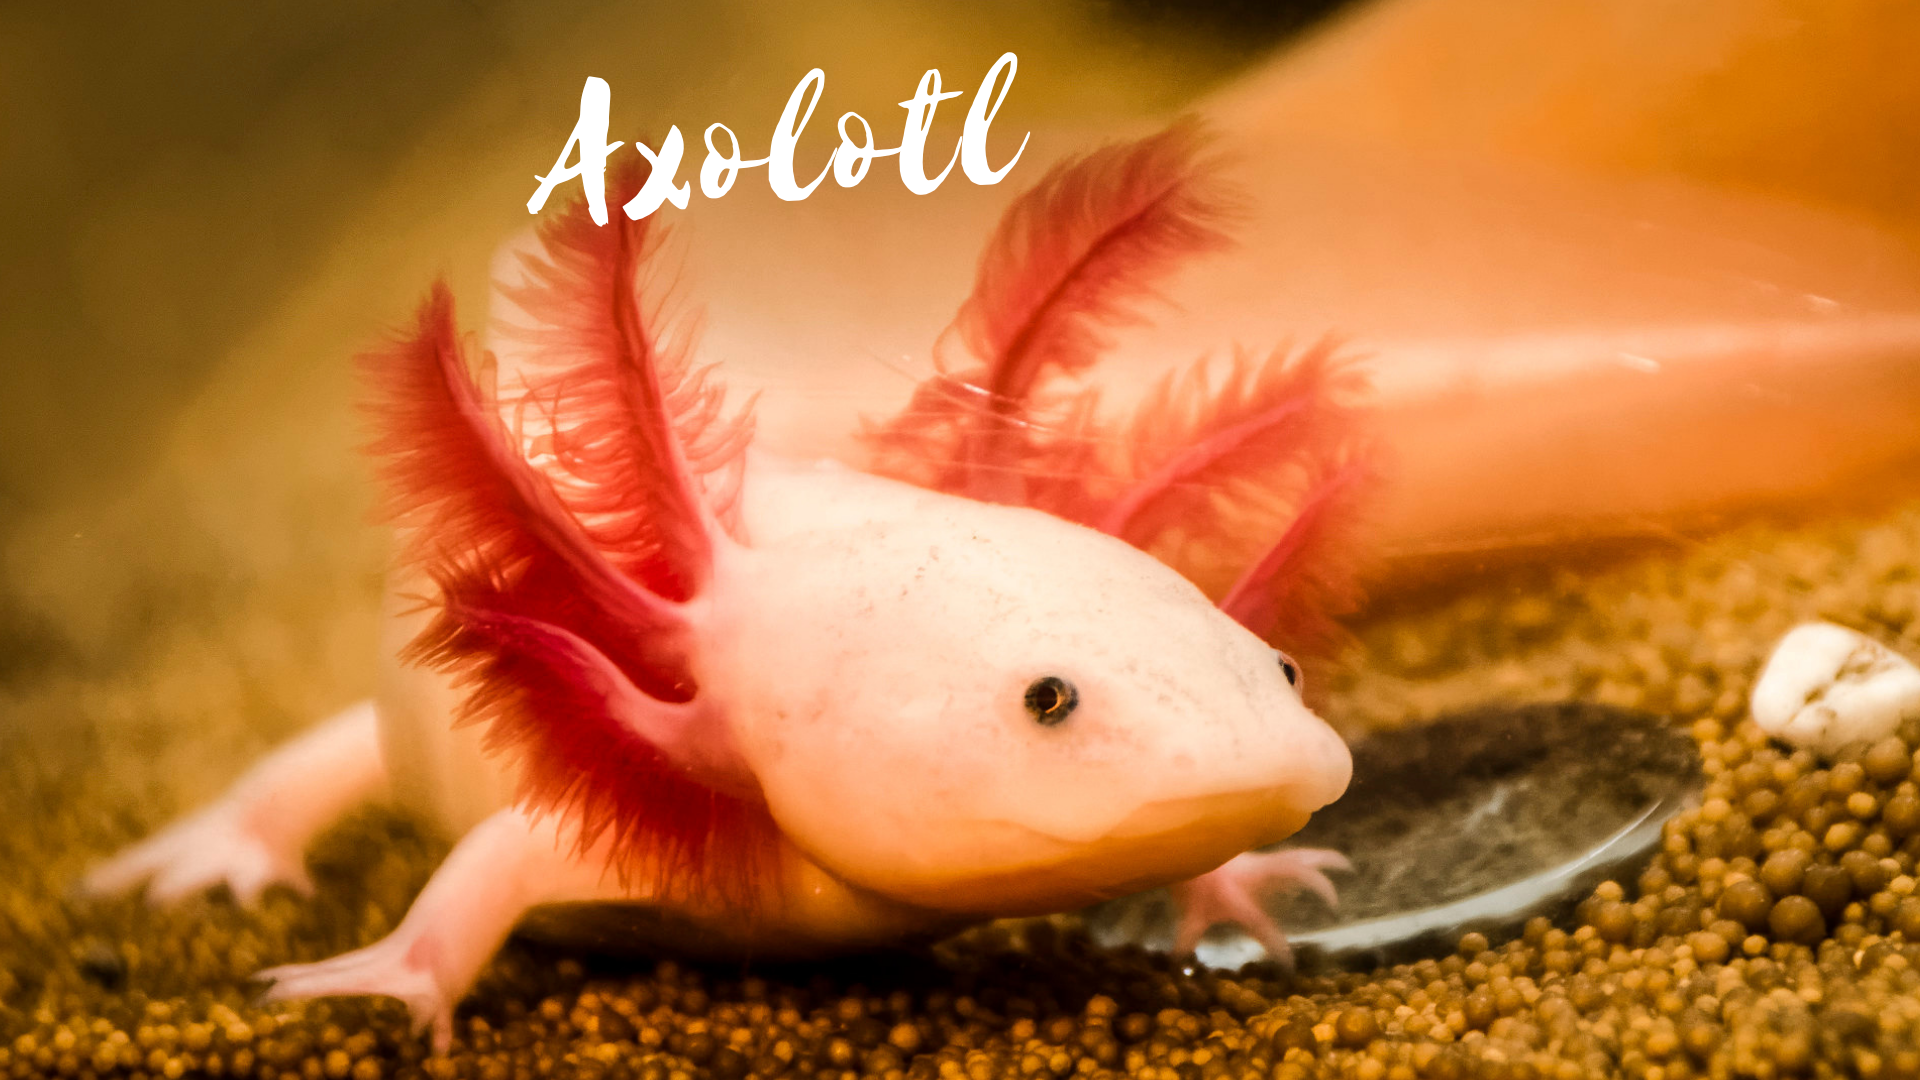 How To Raise The Axolotl, The Bizarre Mexican Walking Fish